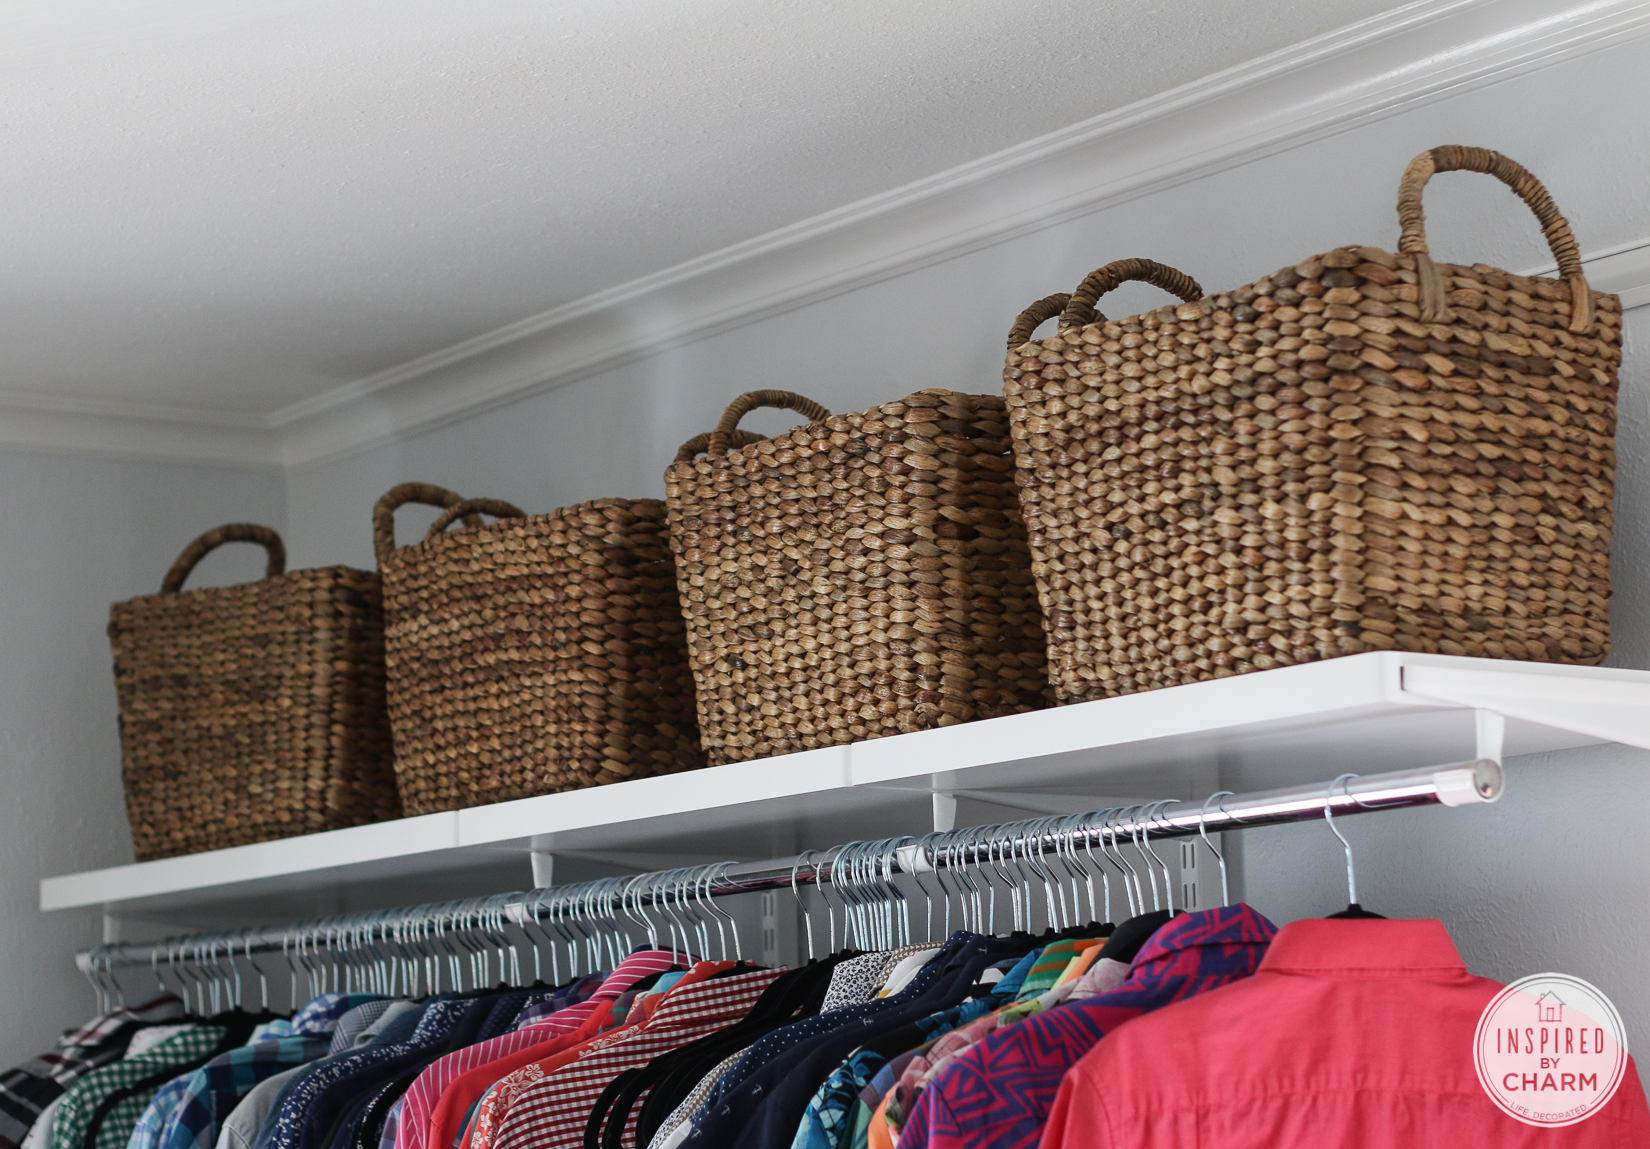 Storage Baskets Custom Cubbies Hold Colorful Source · My Decision About  That Dresser Inspired By Charm